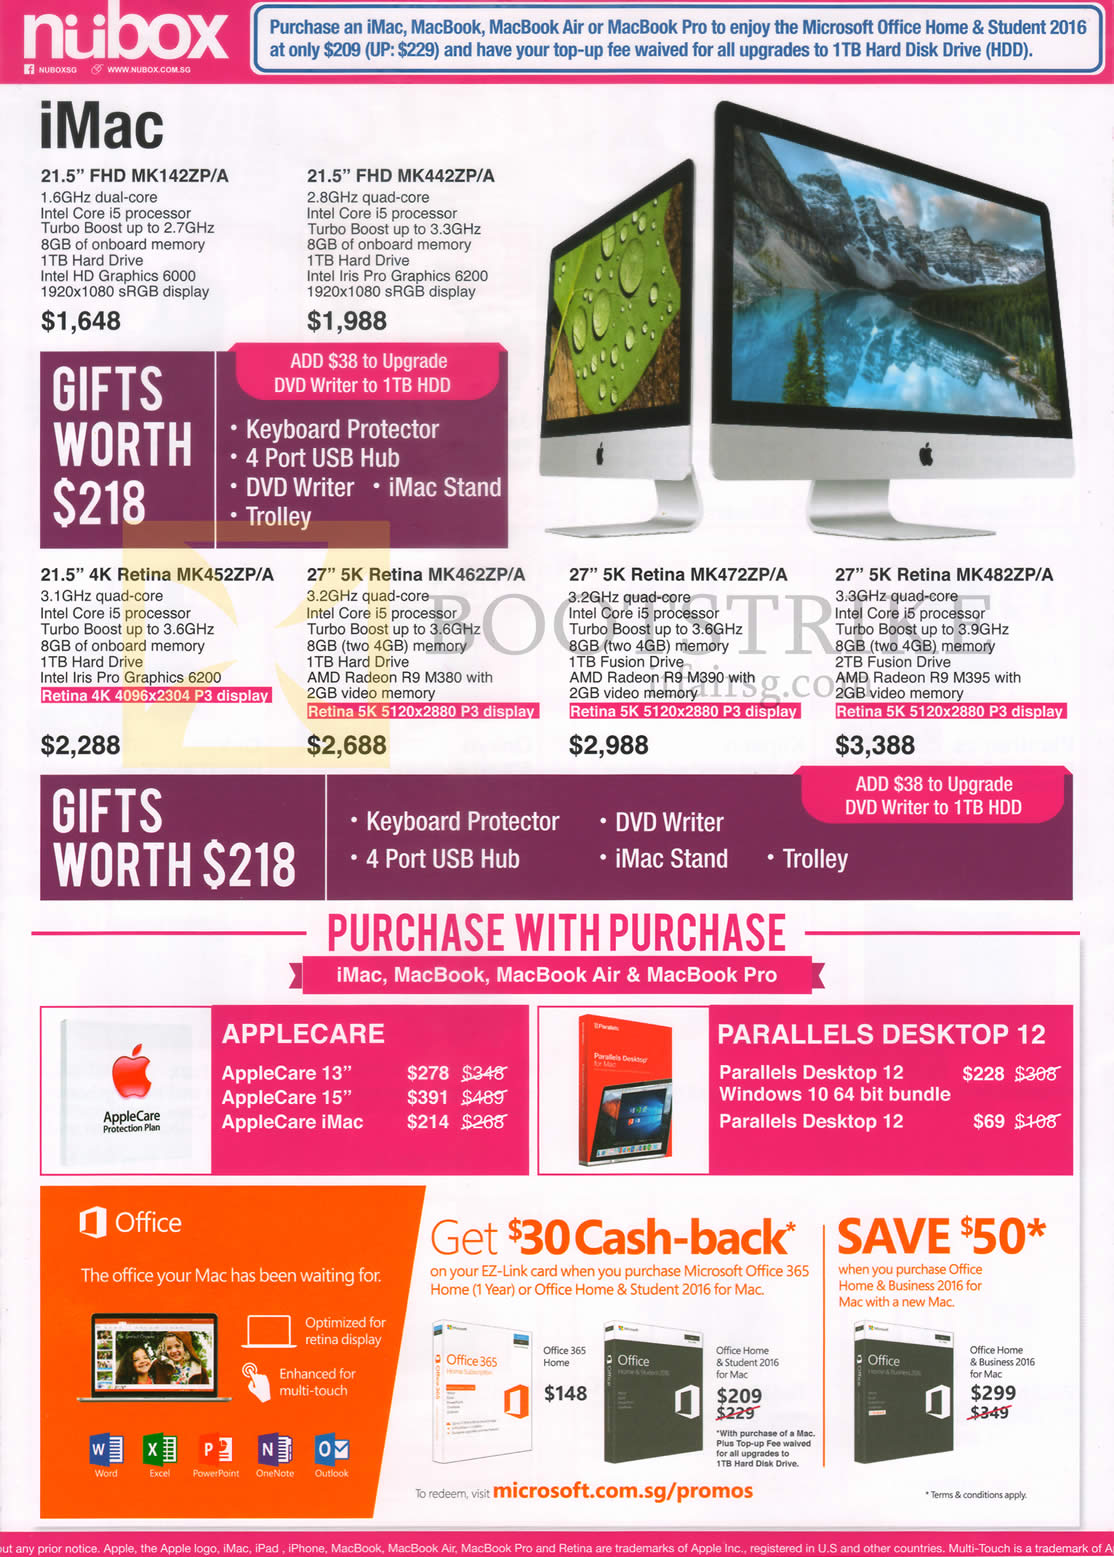 COMEX 2016 price list image brochure of Nubox Apple IMac Desktop PC, Purchase With Purchase, 21.5 Inch, 27 Inch, Purchase With Purchase, Parallels Desktop